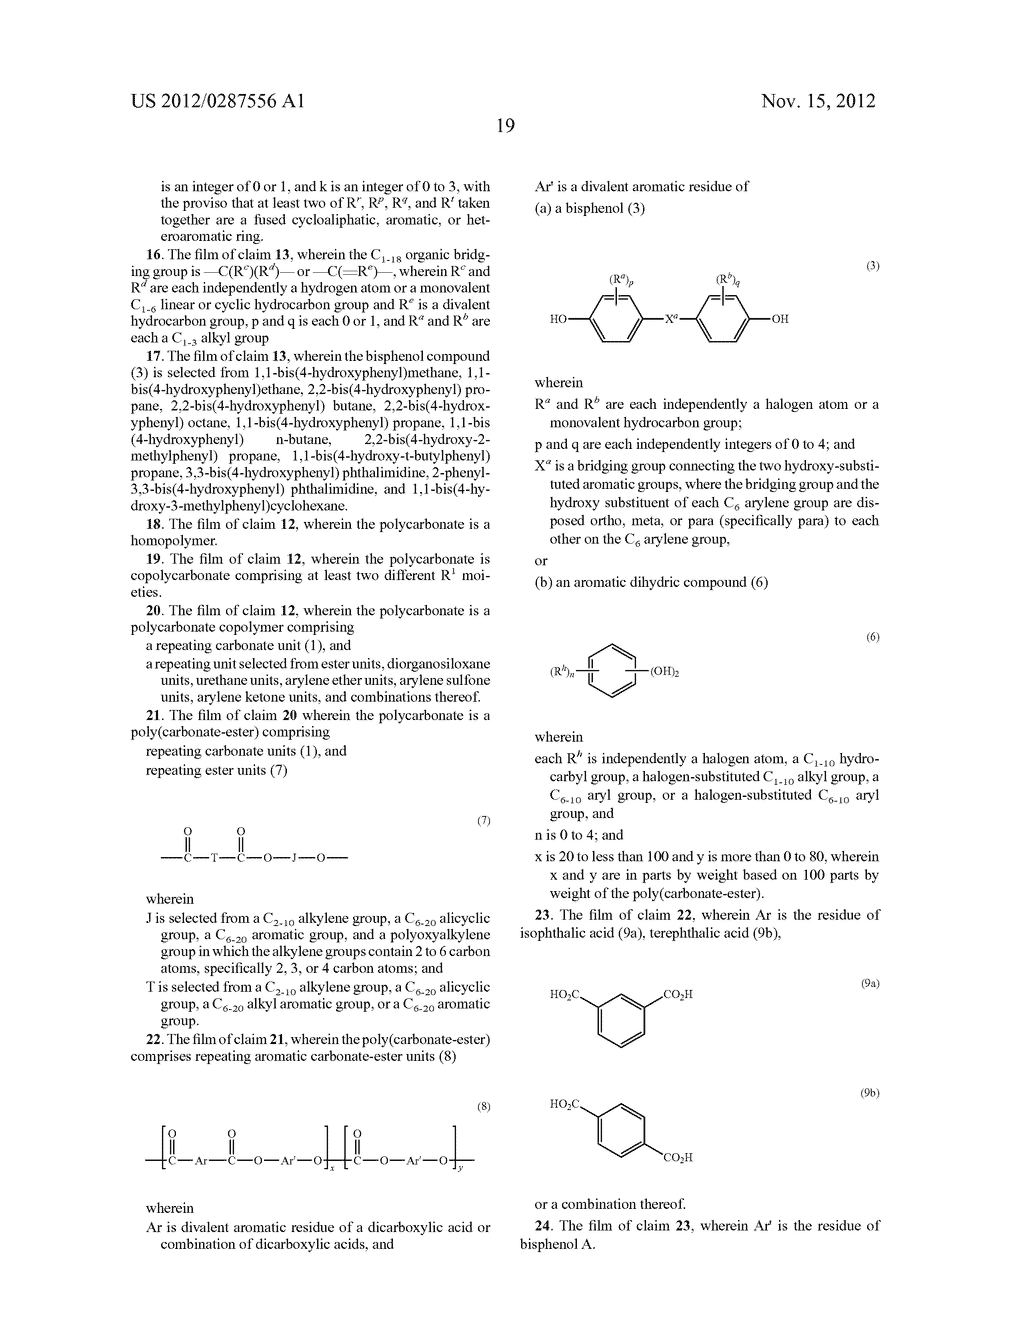 AMORPHOUS POLYCARBONATE FILMS FOR CAPACITORS, METHODS OF MANUFACTURE, AND     ARTICLES MANUFACTURED THEREFROM - diagram, schematic, and image 20